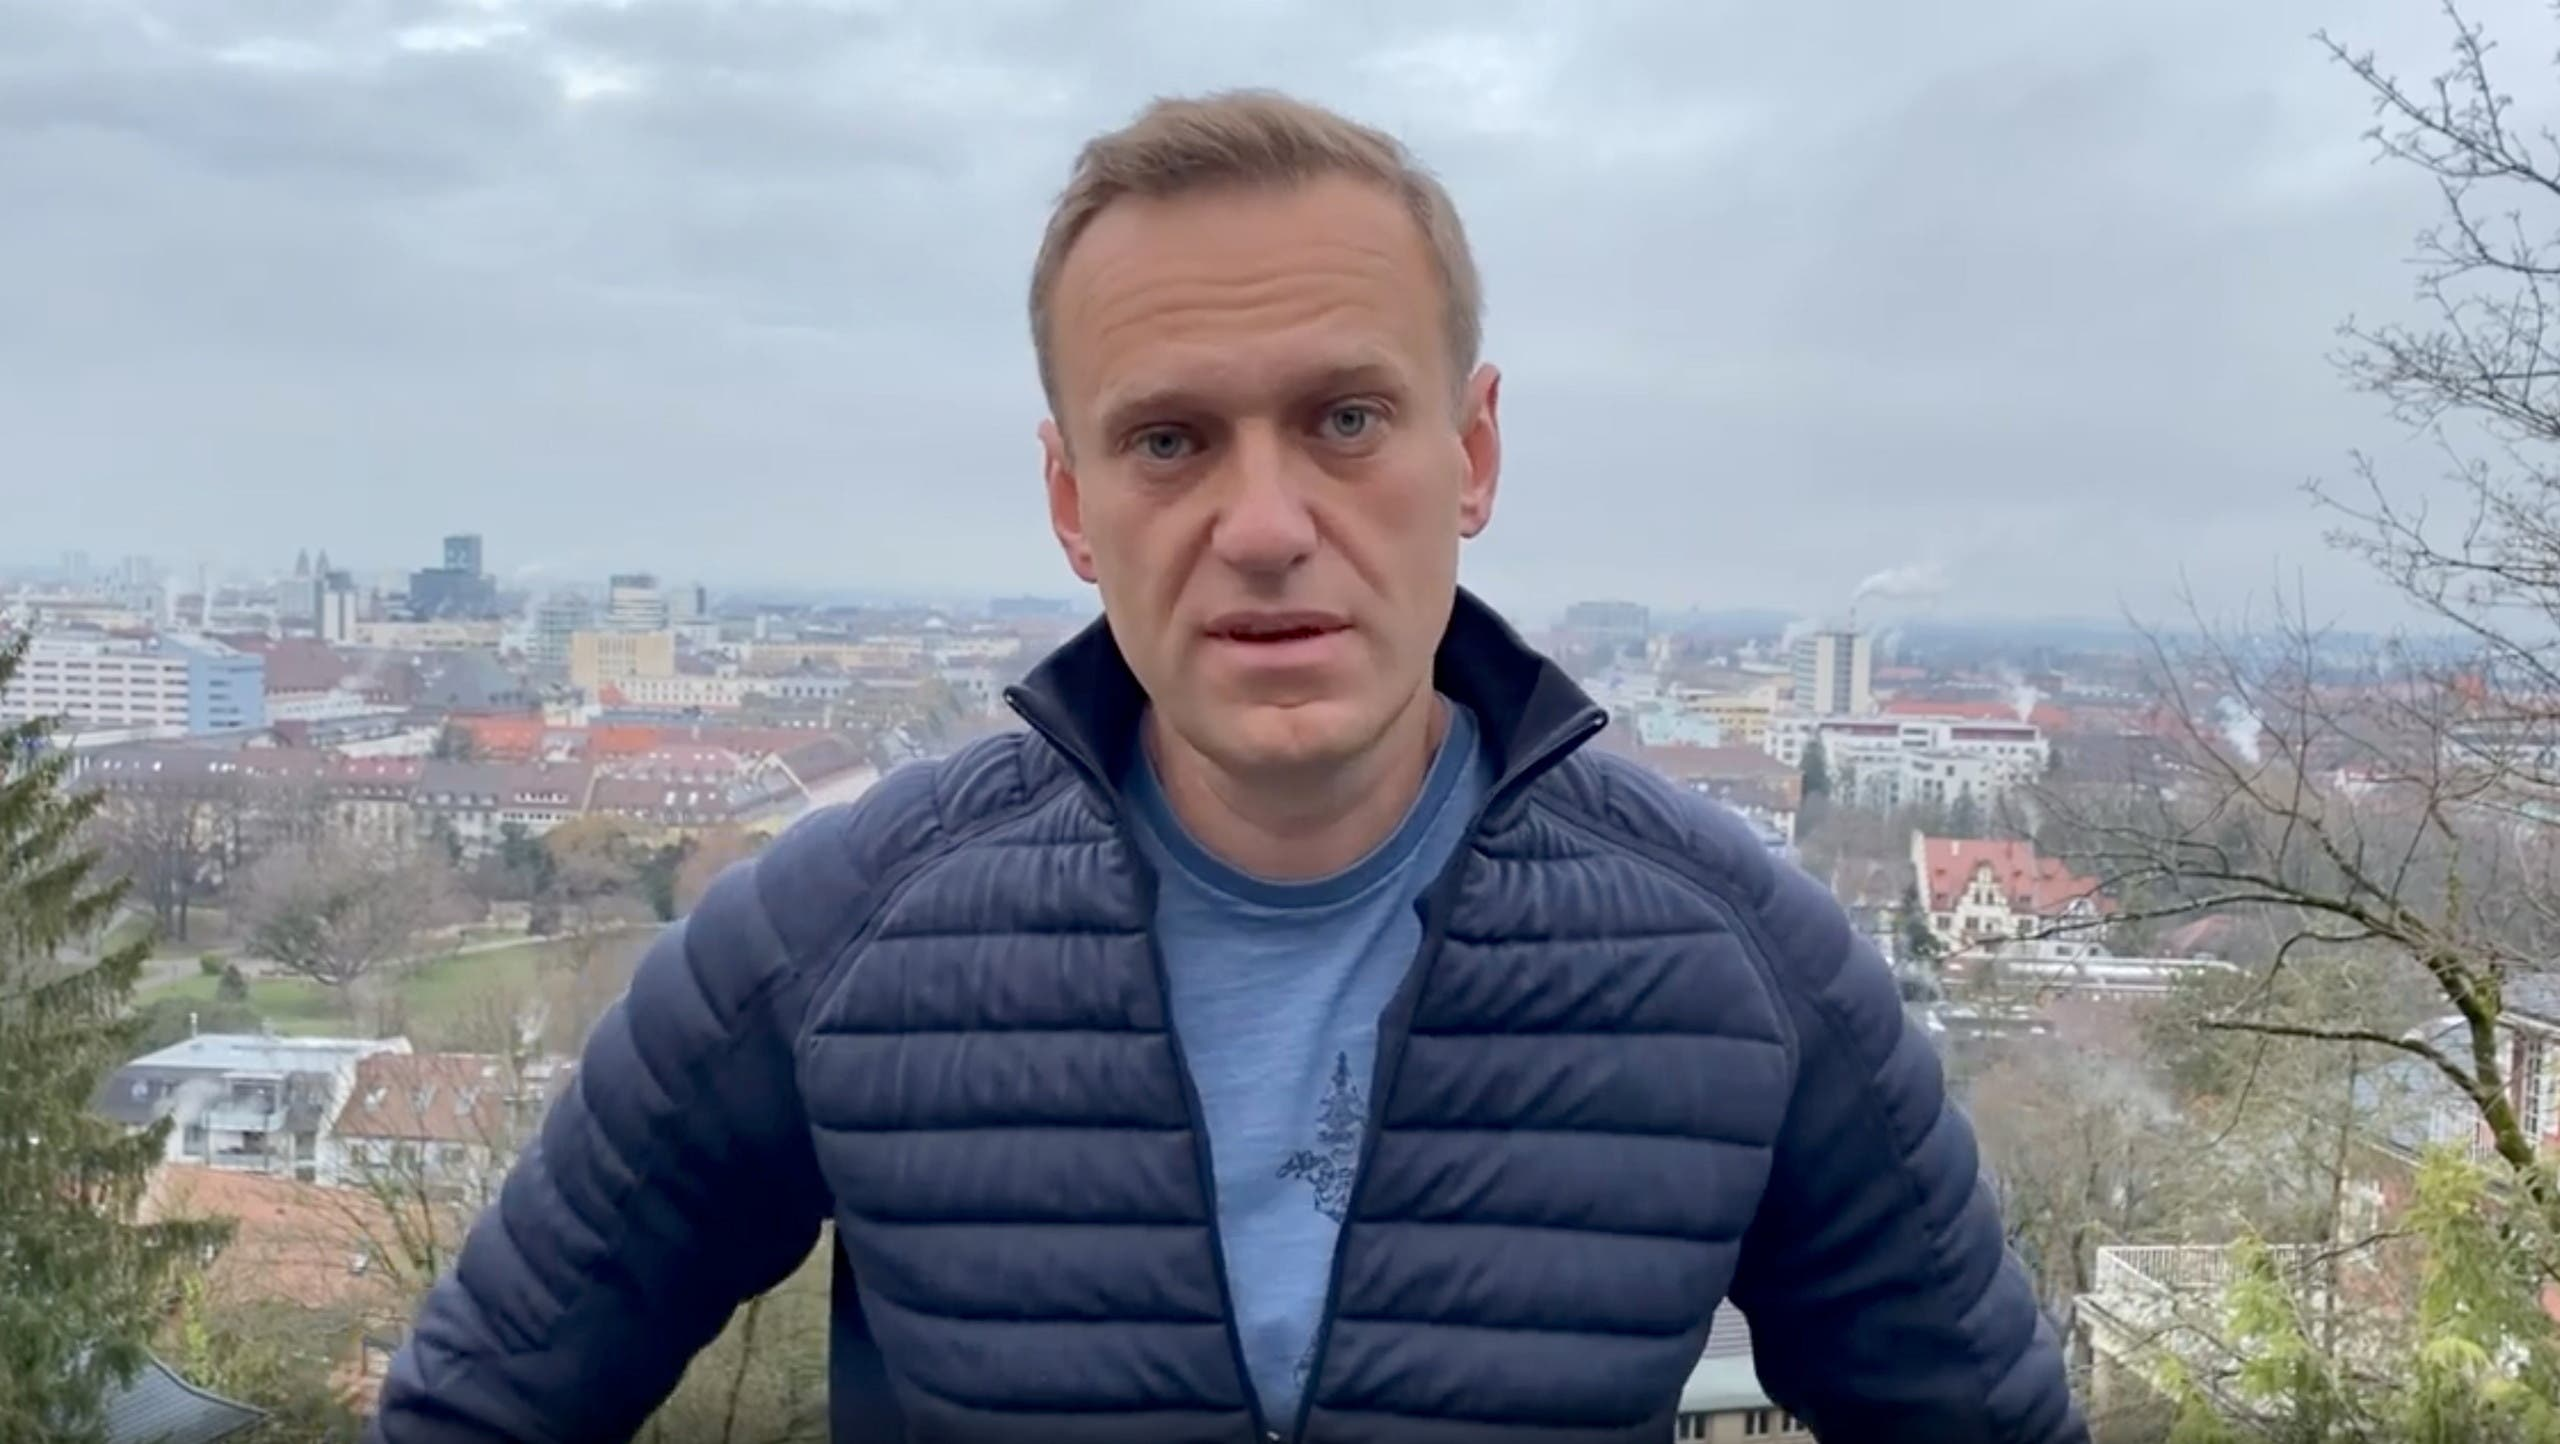 Russian opposition politician Alexei Navalny (Reuters)